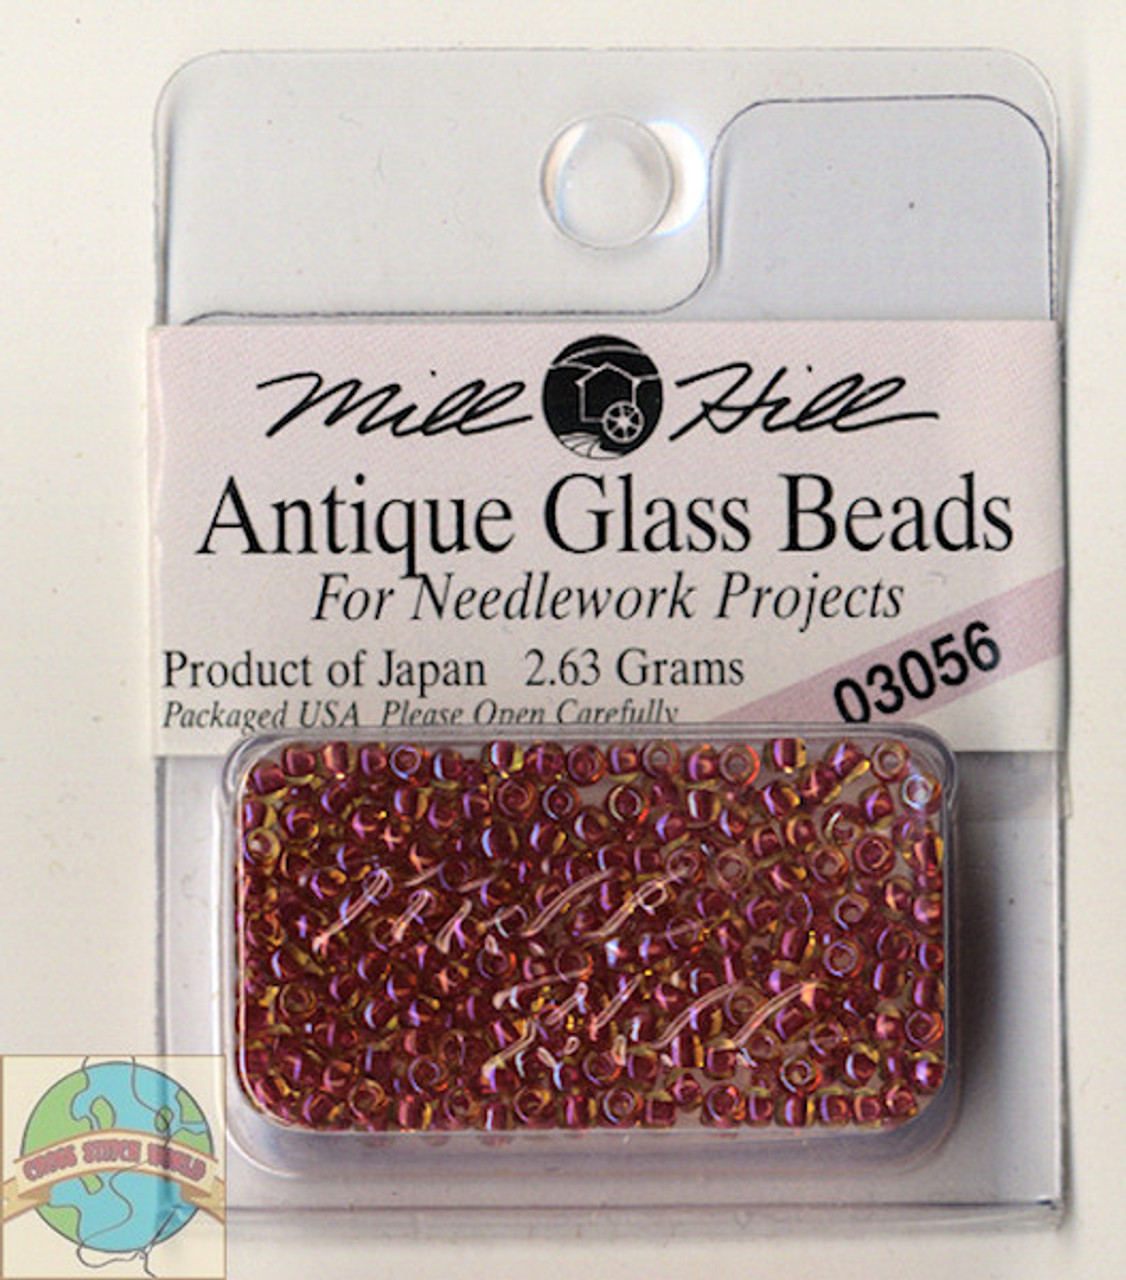 Mill Hill Antique Glass Beads 2.63g Antique Red #03056